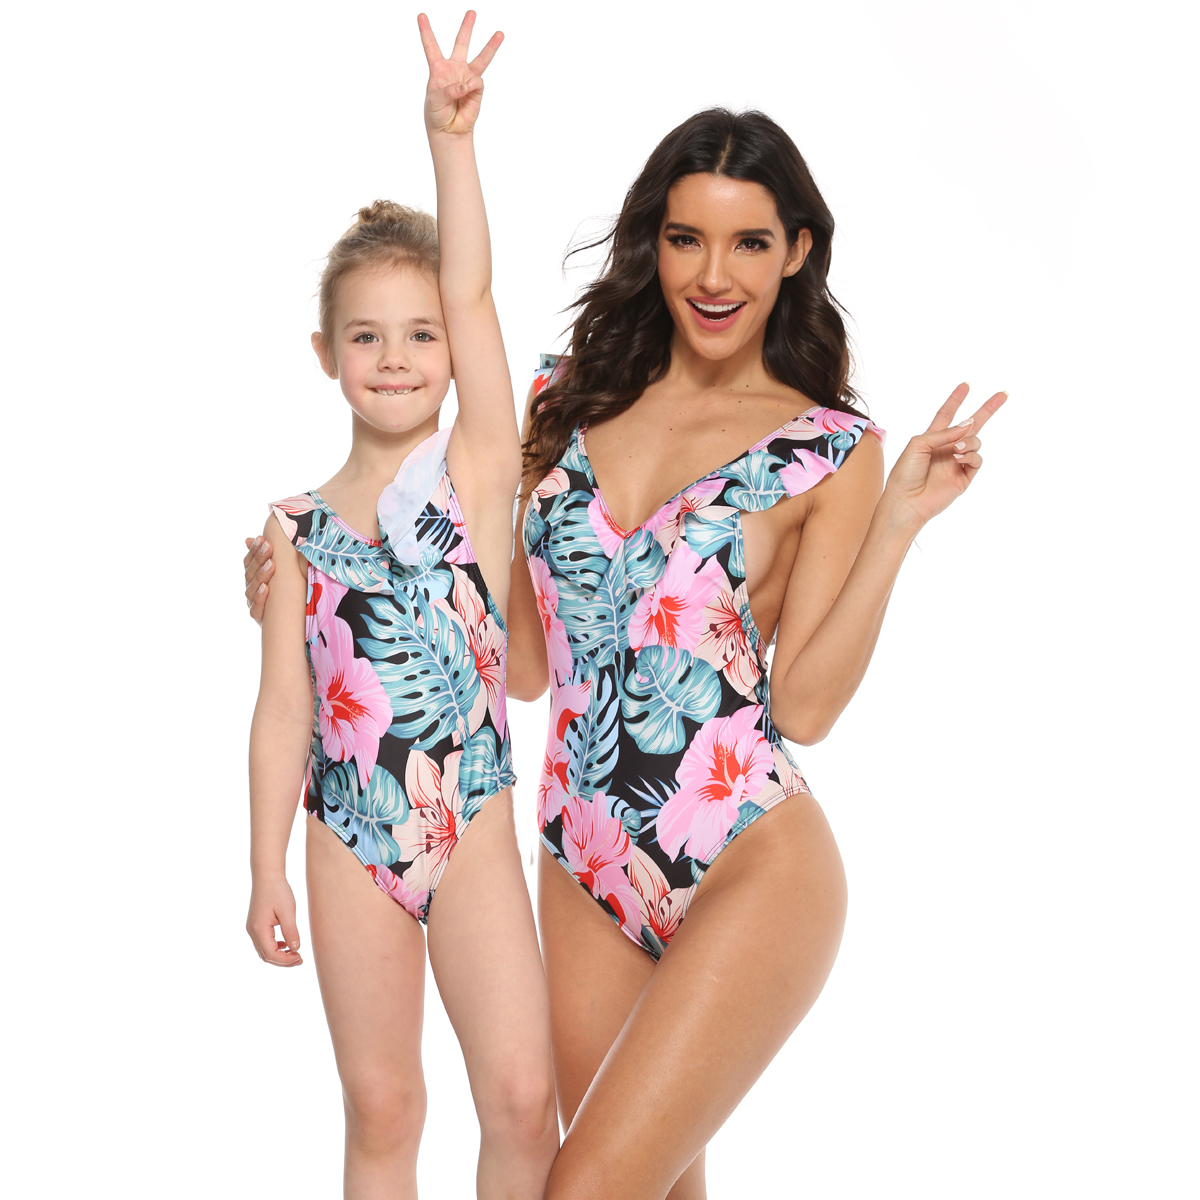 Flower Swimsuit Mother Daughter Swimwear V-neck Mommy and Me Bath Suits Family Matching Clothes Look Women Girls Bikini Dresses